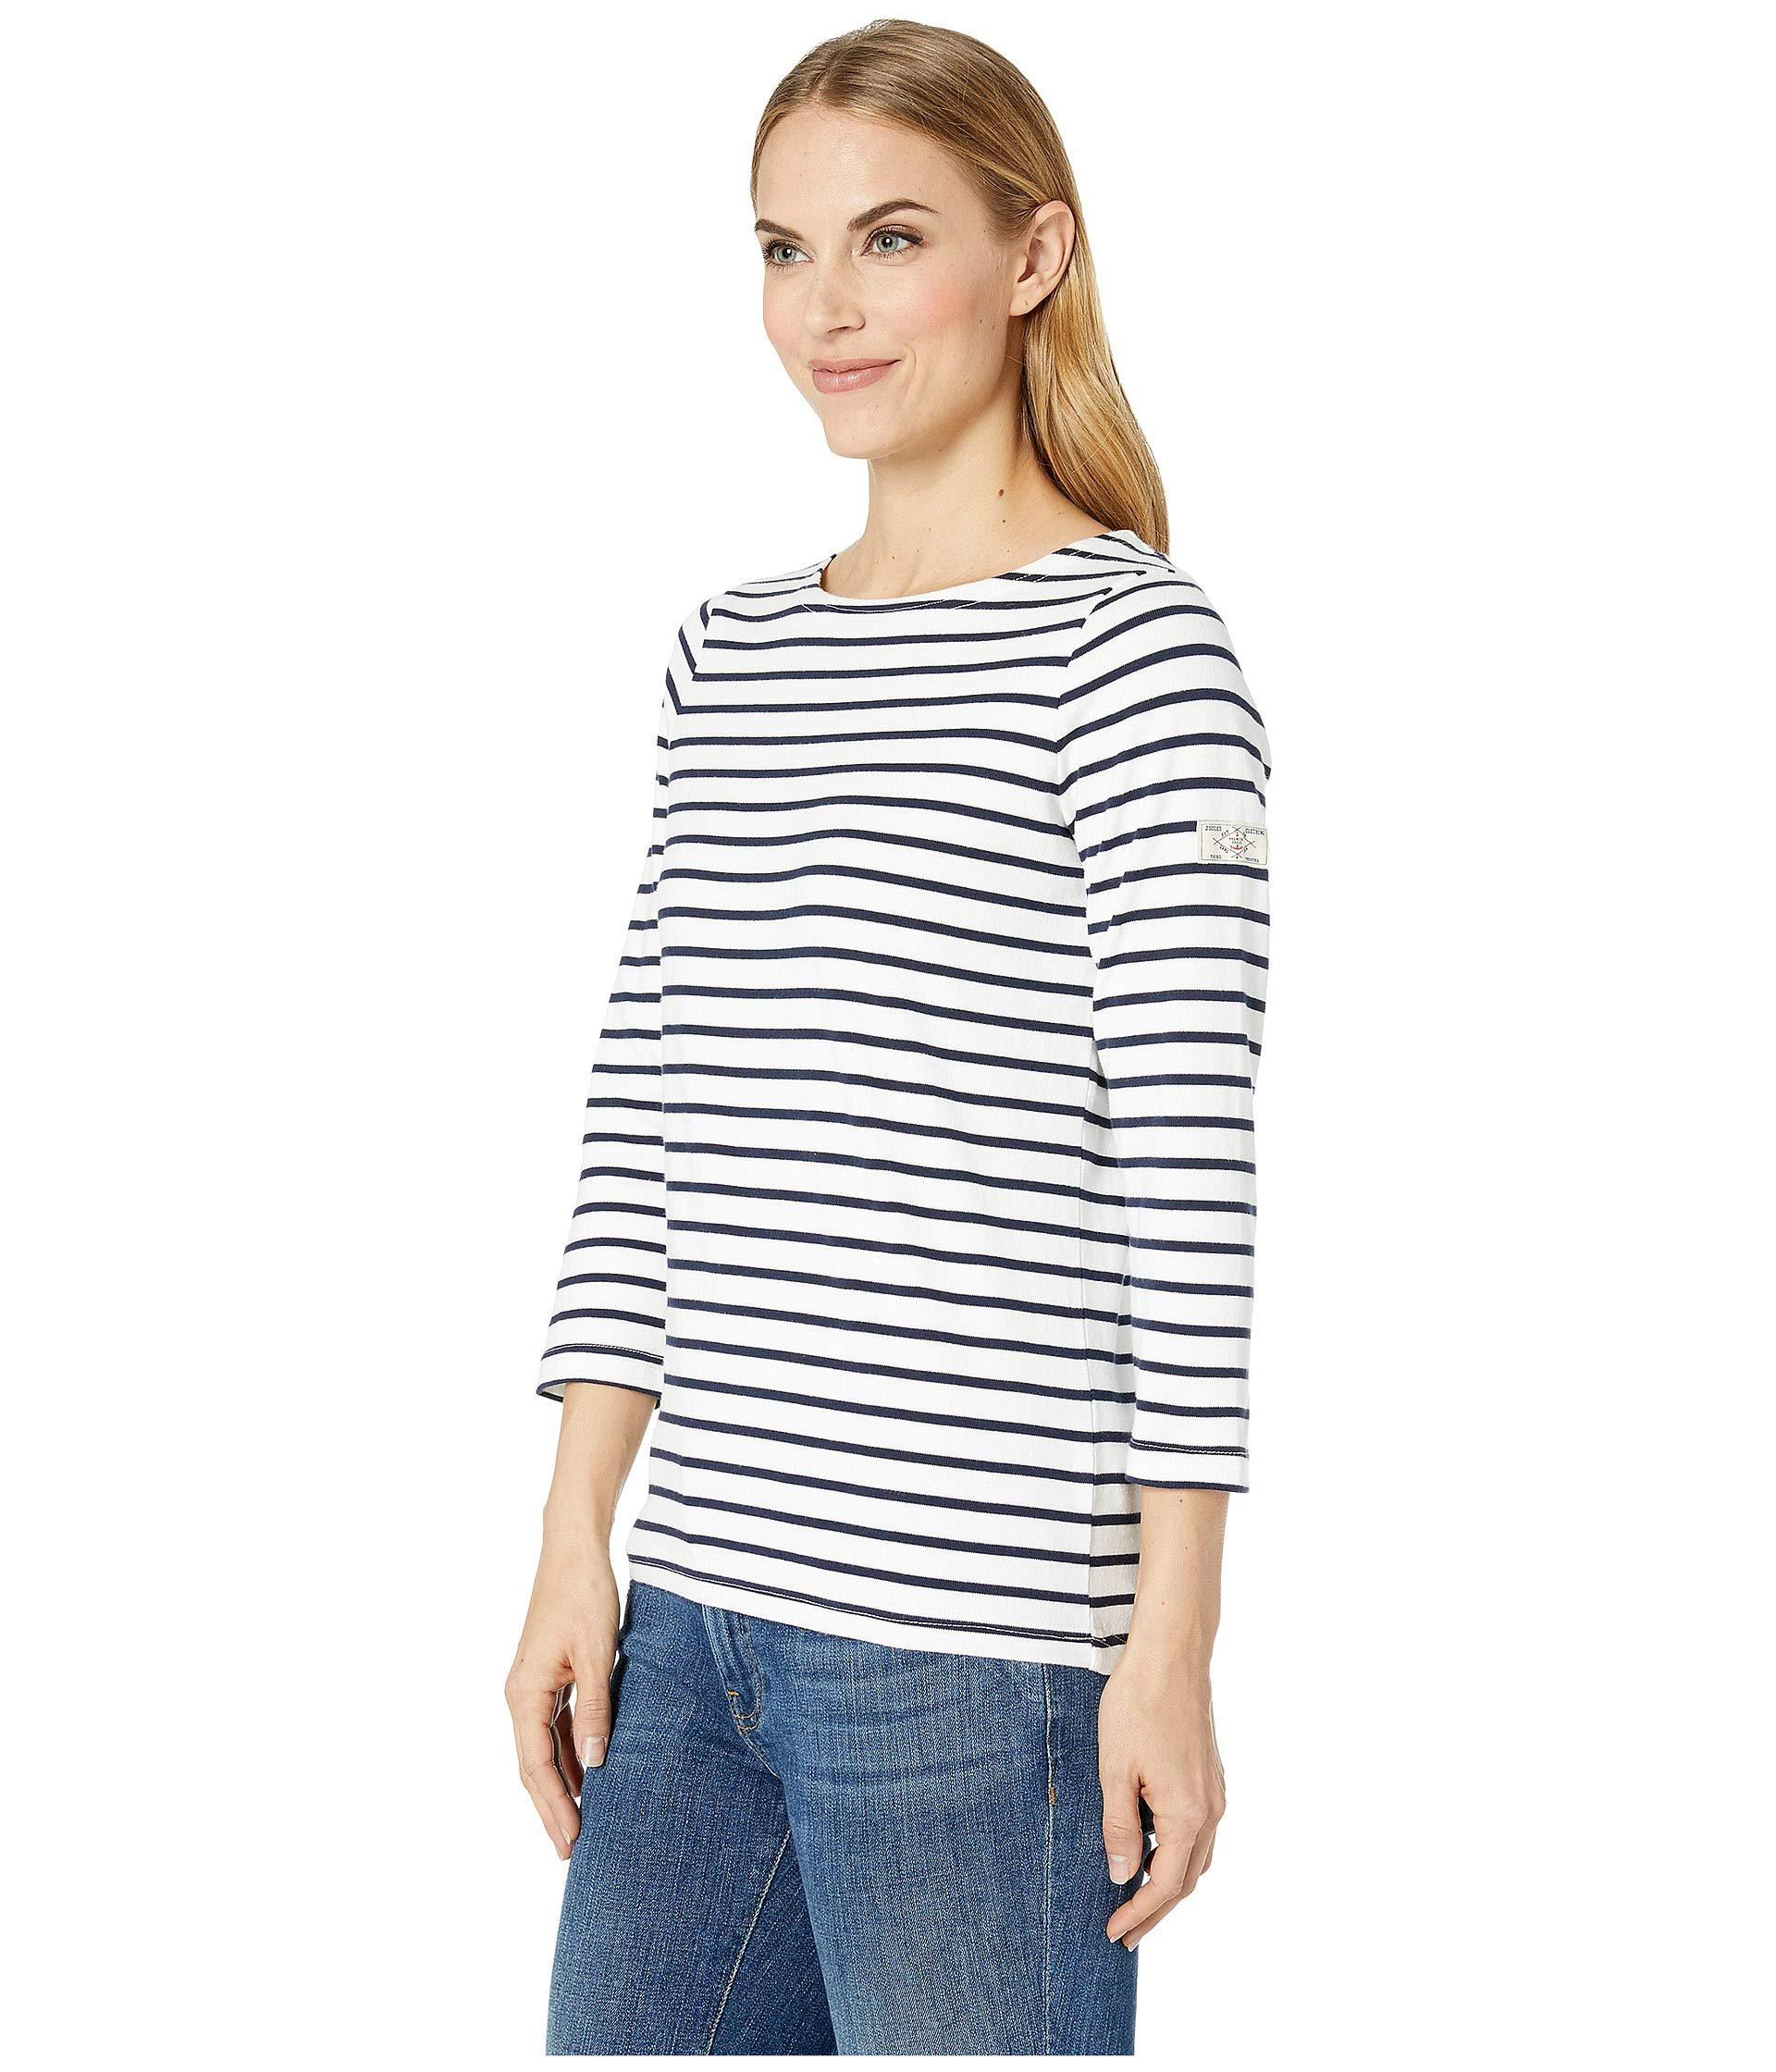 7fcf0310c55996 Lyst - Joules Harbour - Jersey Top (cream Navy Stripe) Women s Blouse in  Blue